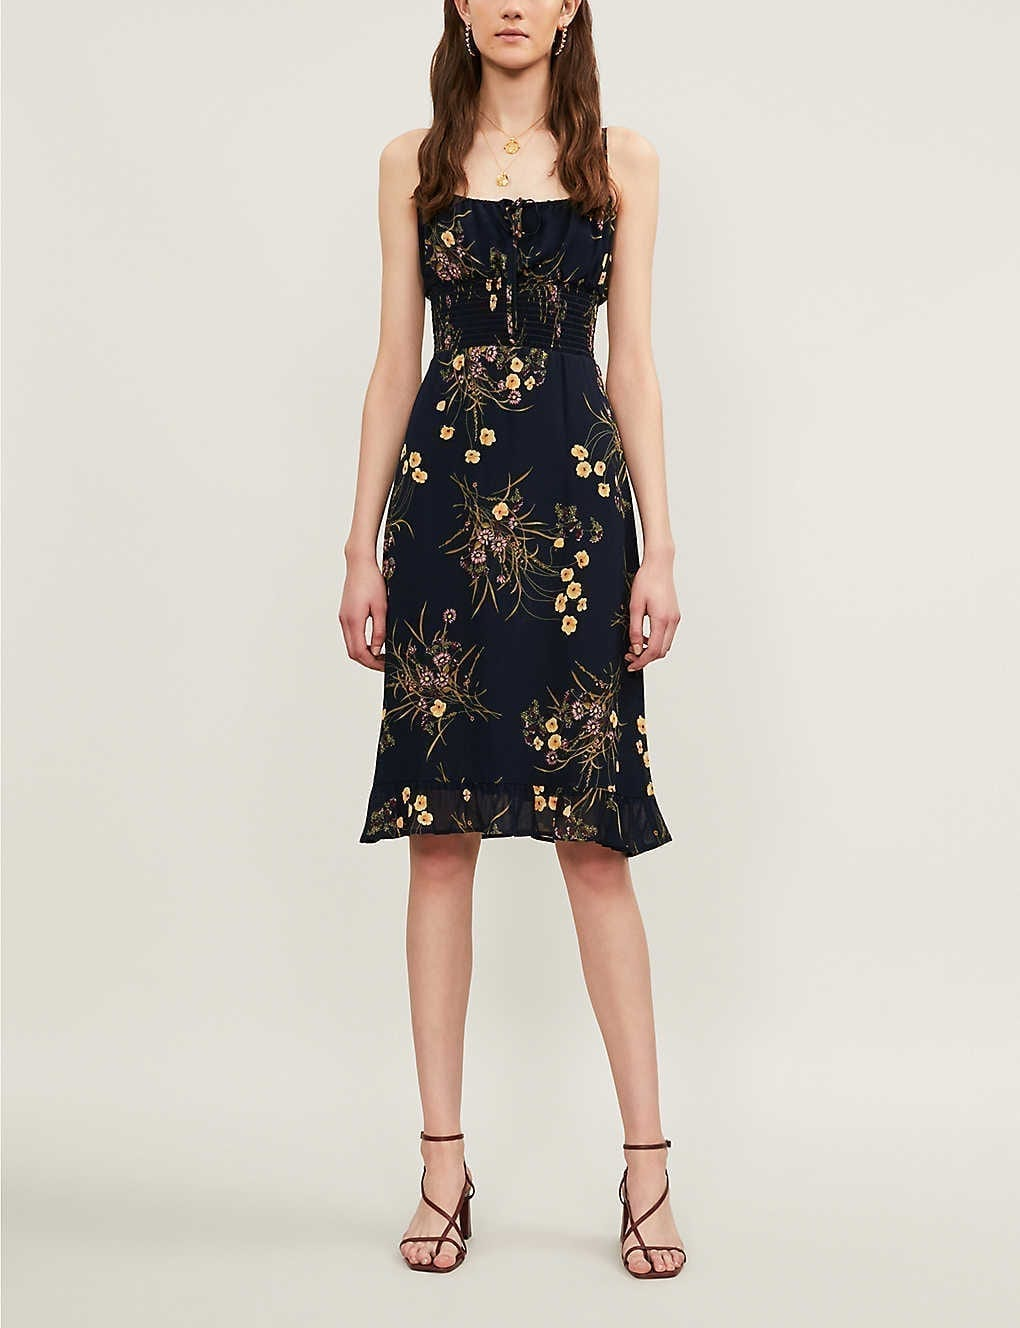 REFORMATION Genie Floral-print Crepe Dress